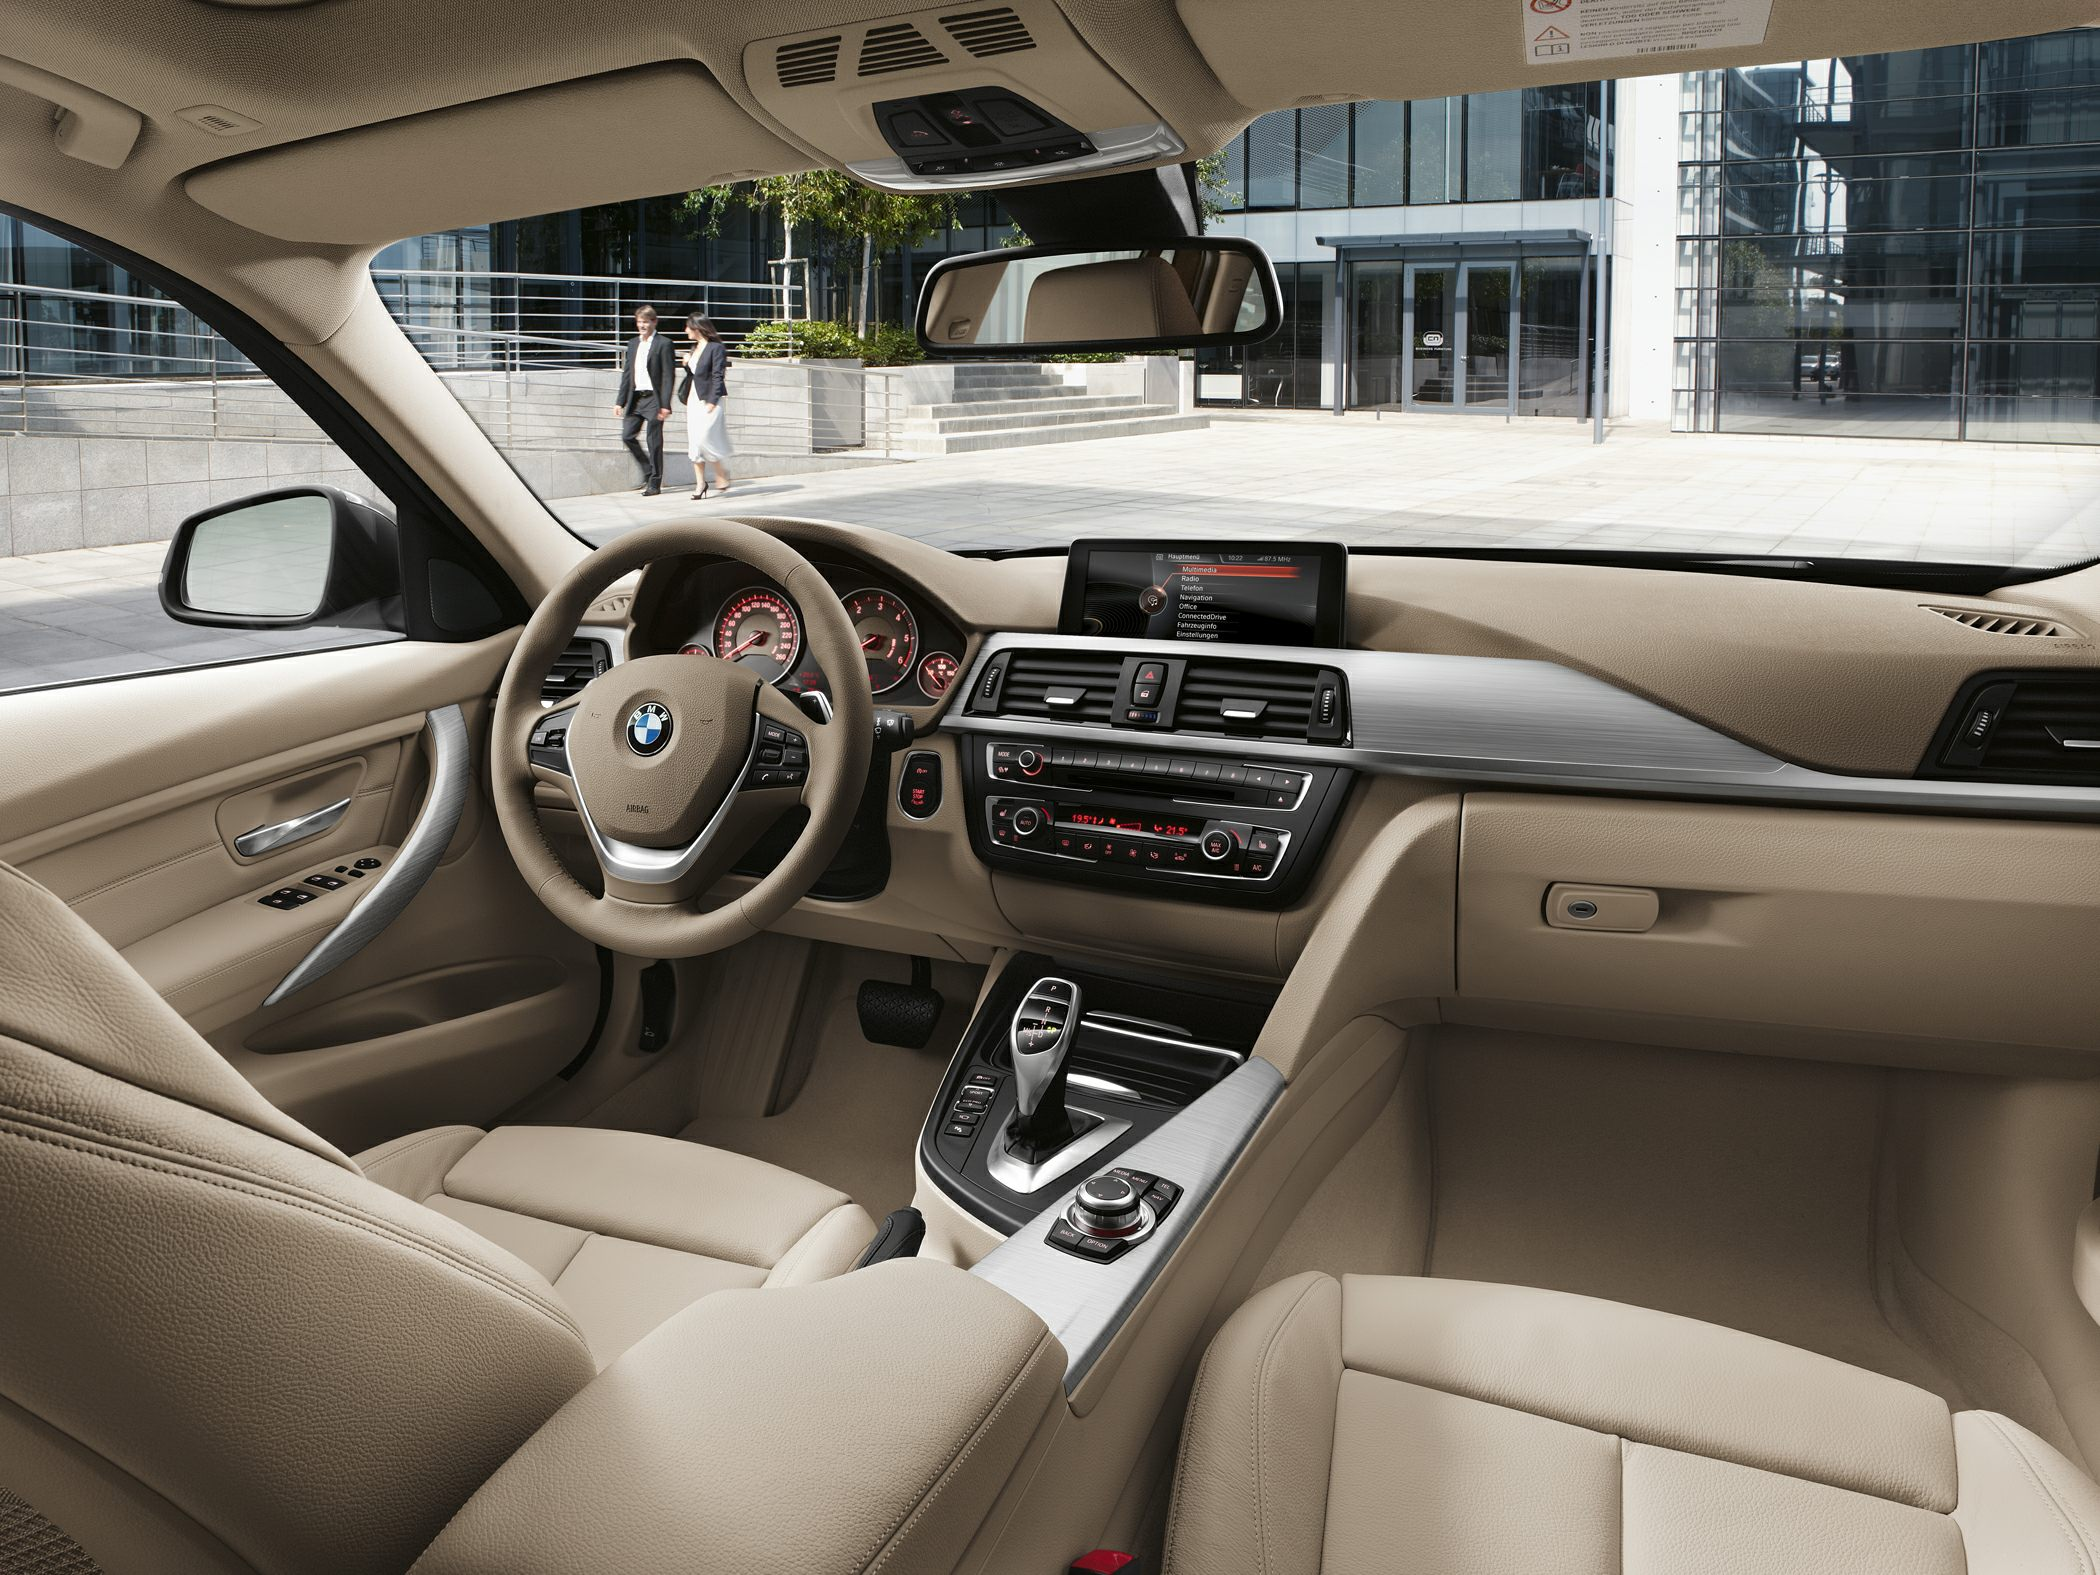 2014 BMW 328 Glamour Interior